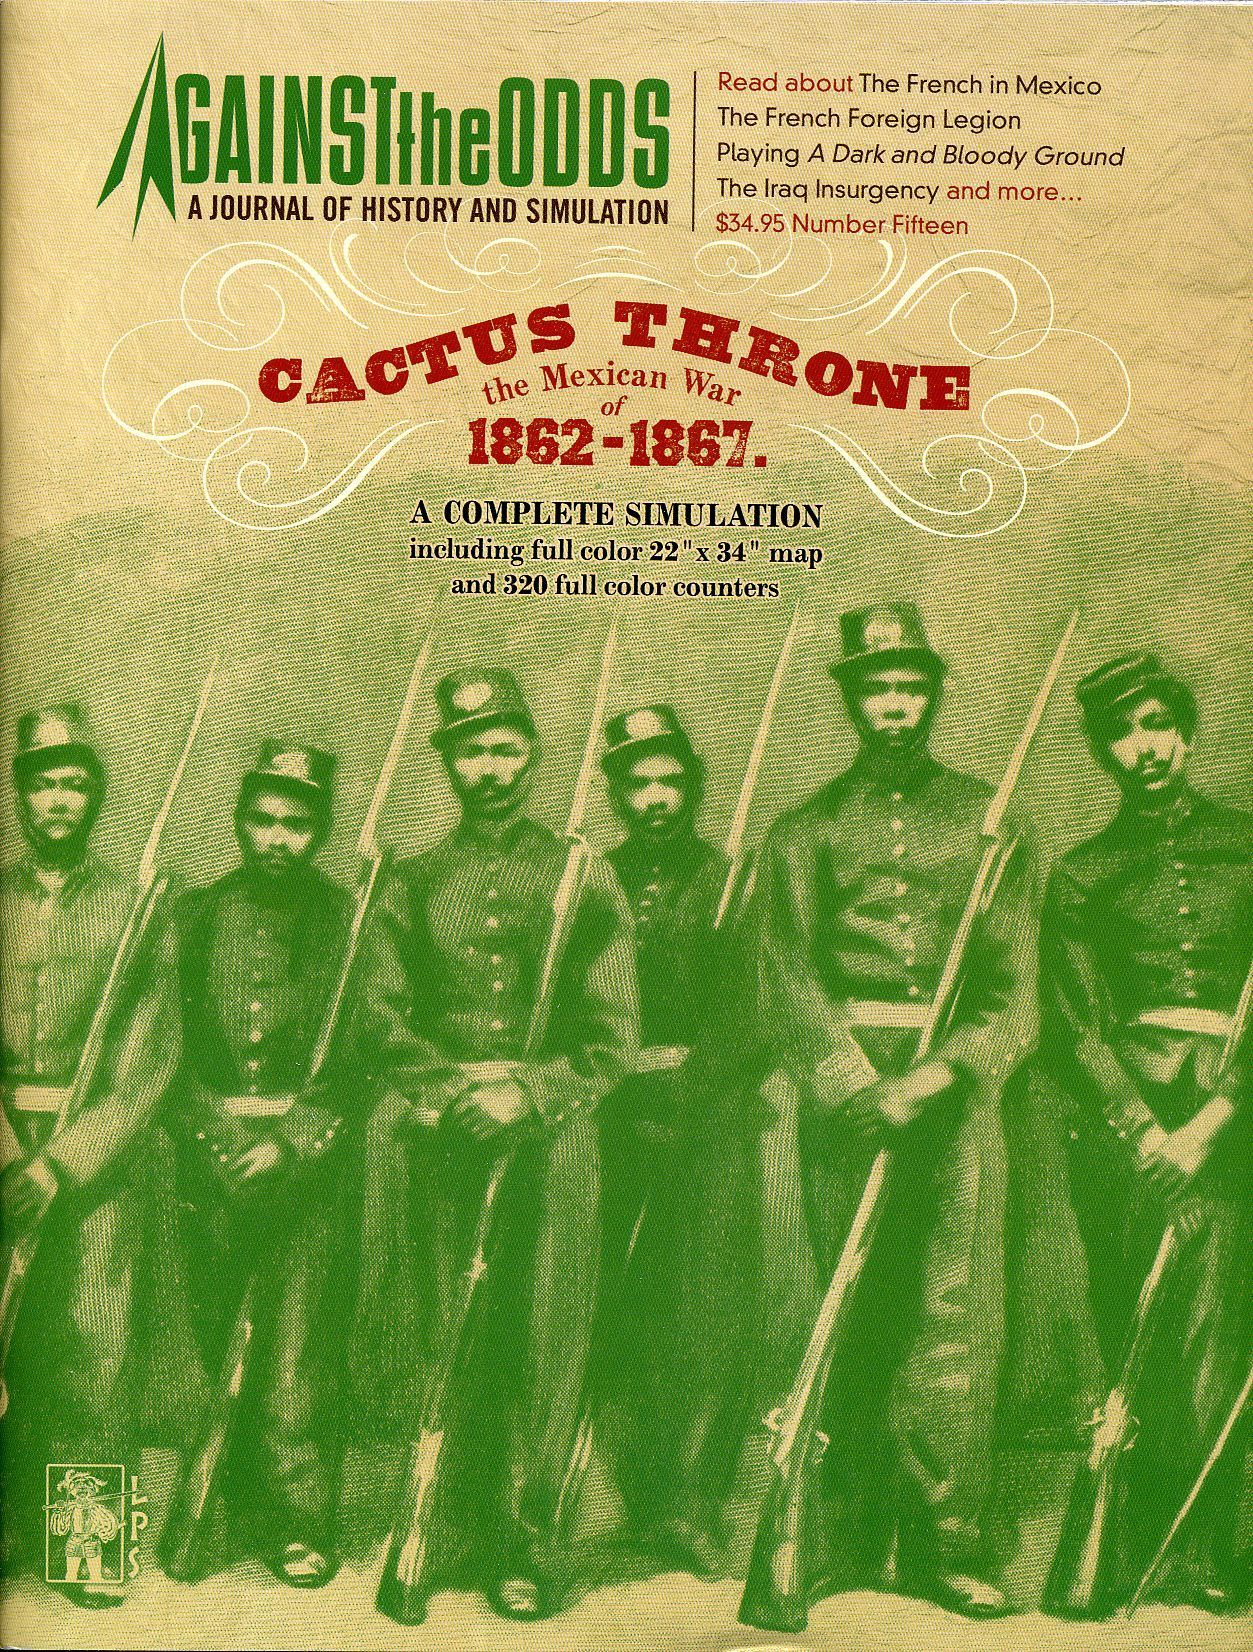 Cactus Throne: The Mexican War of 1862-1867